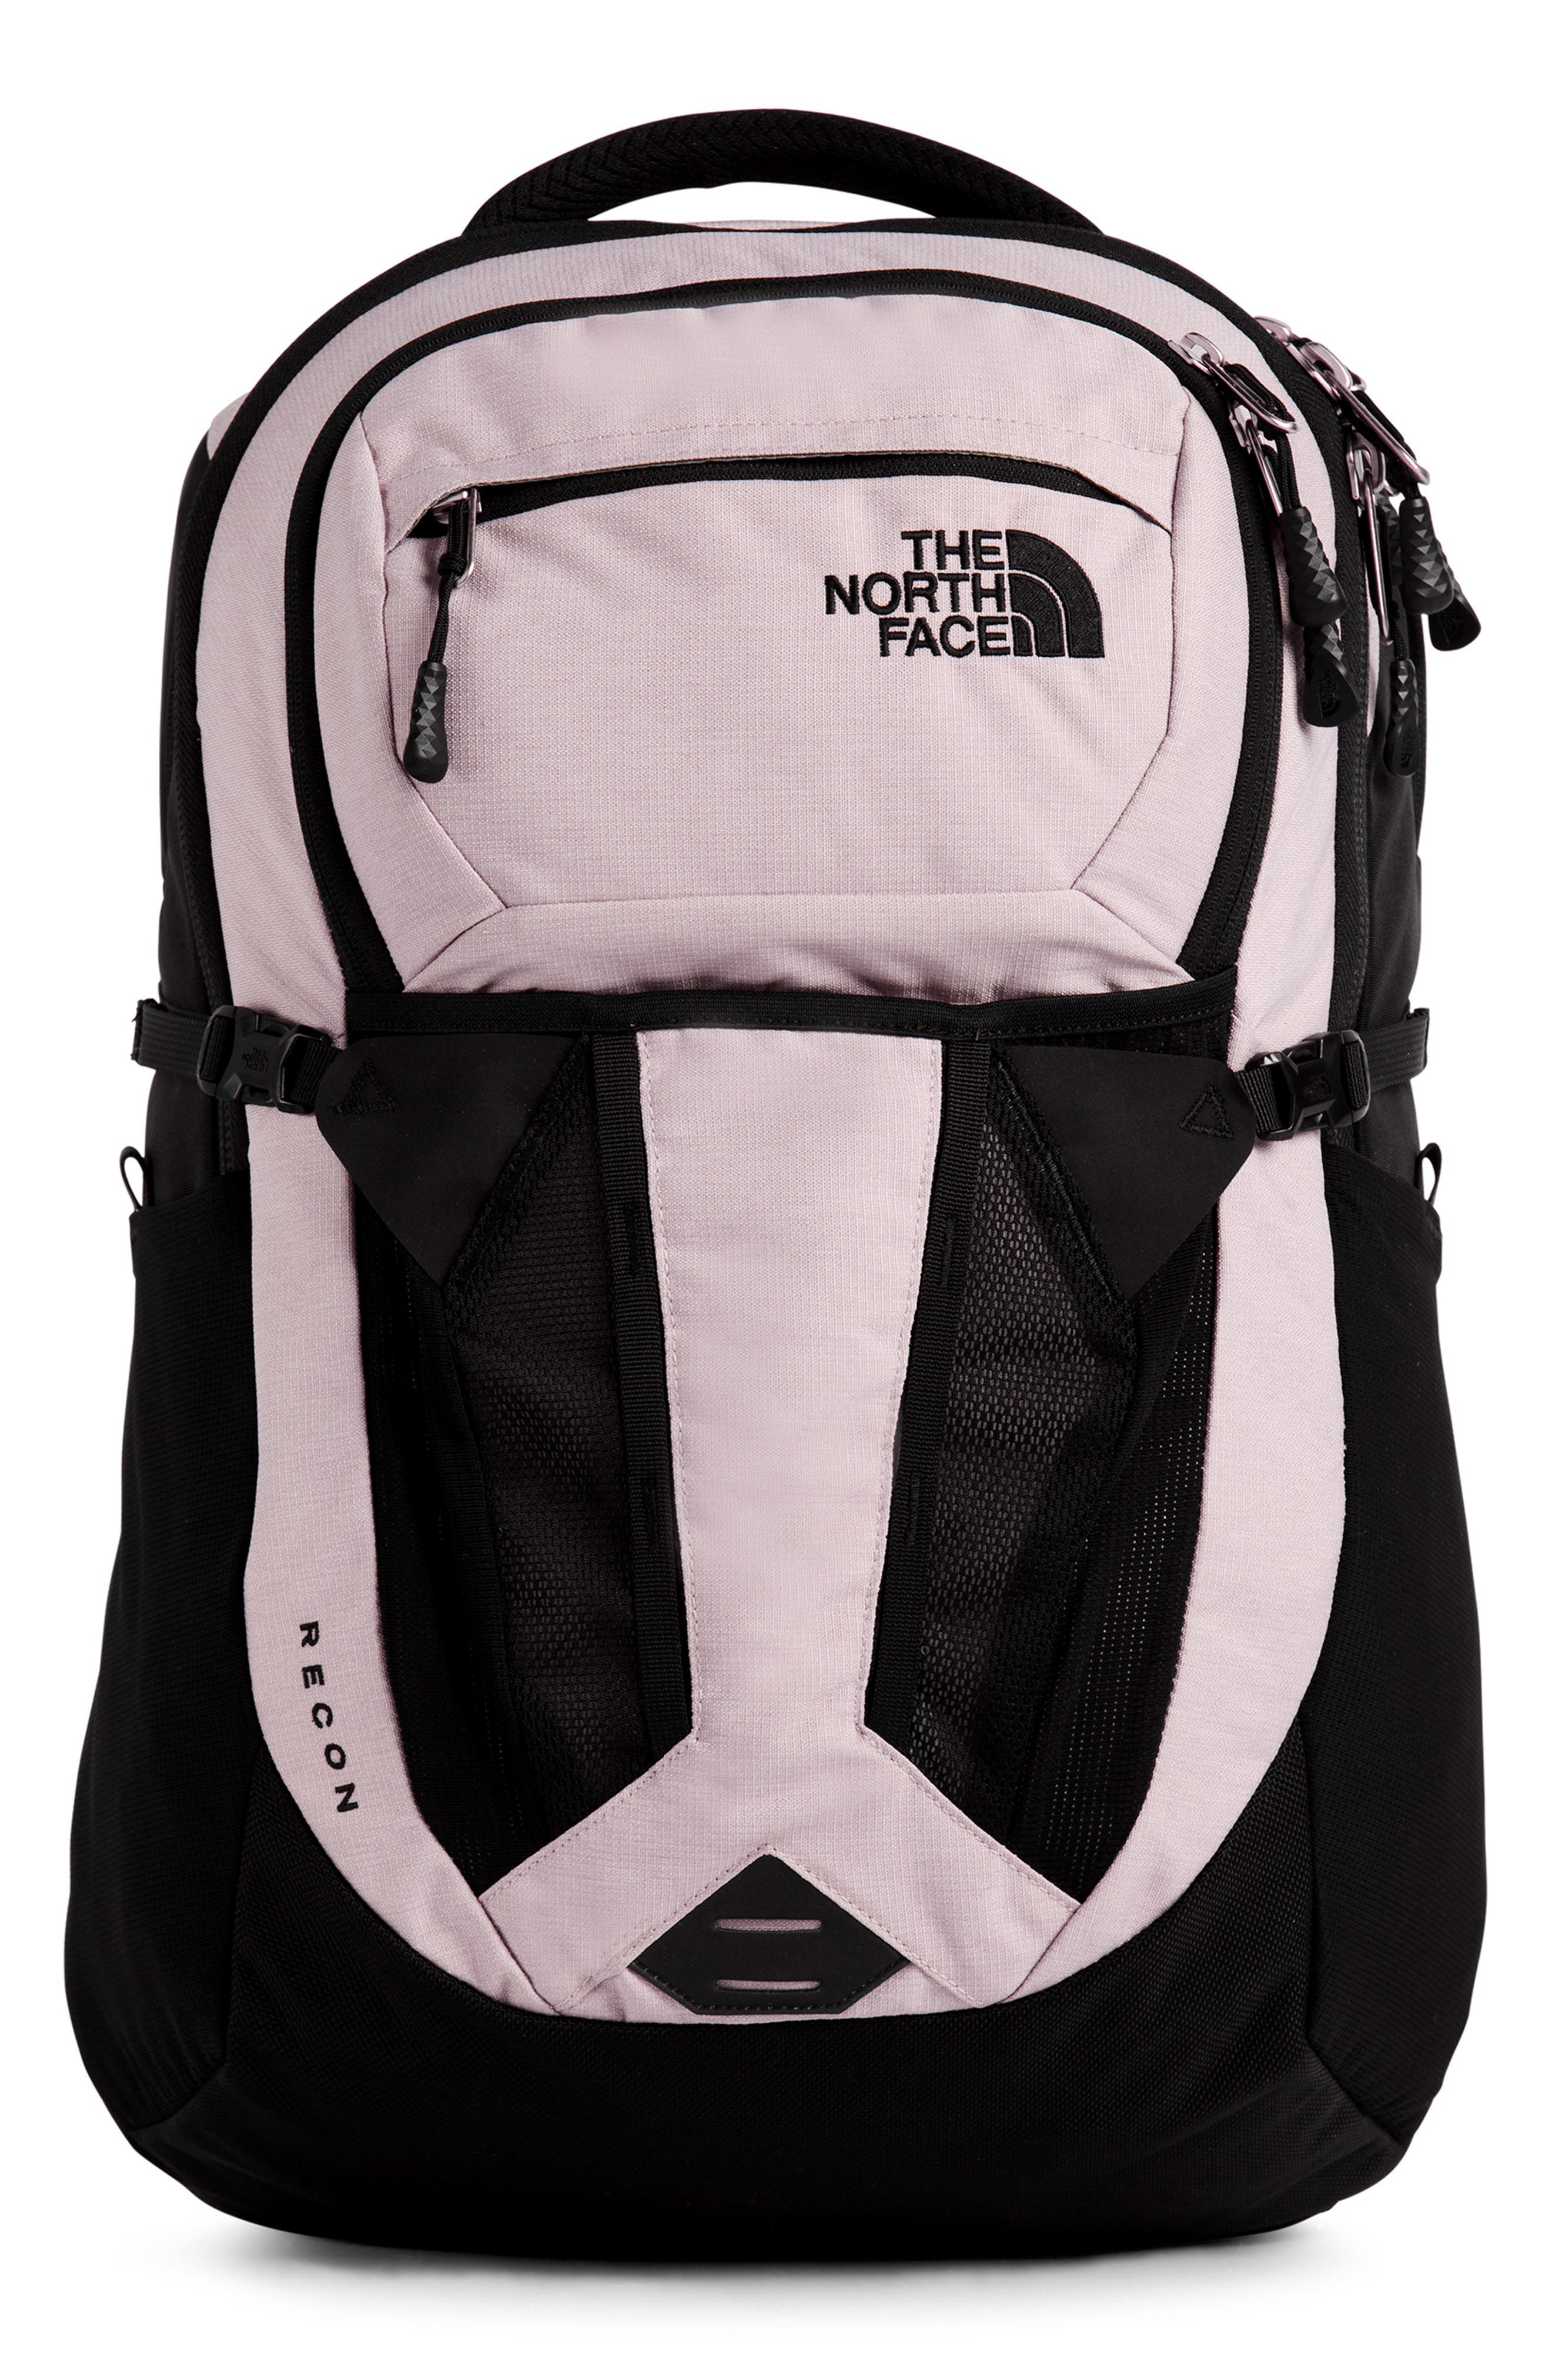 Women's The North Face Backpacks   Nordstrom